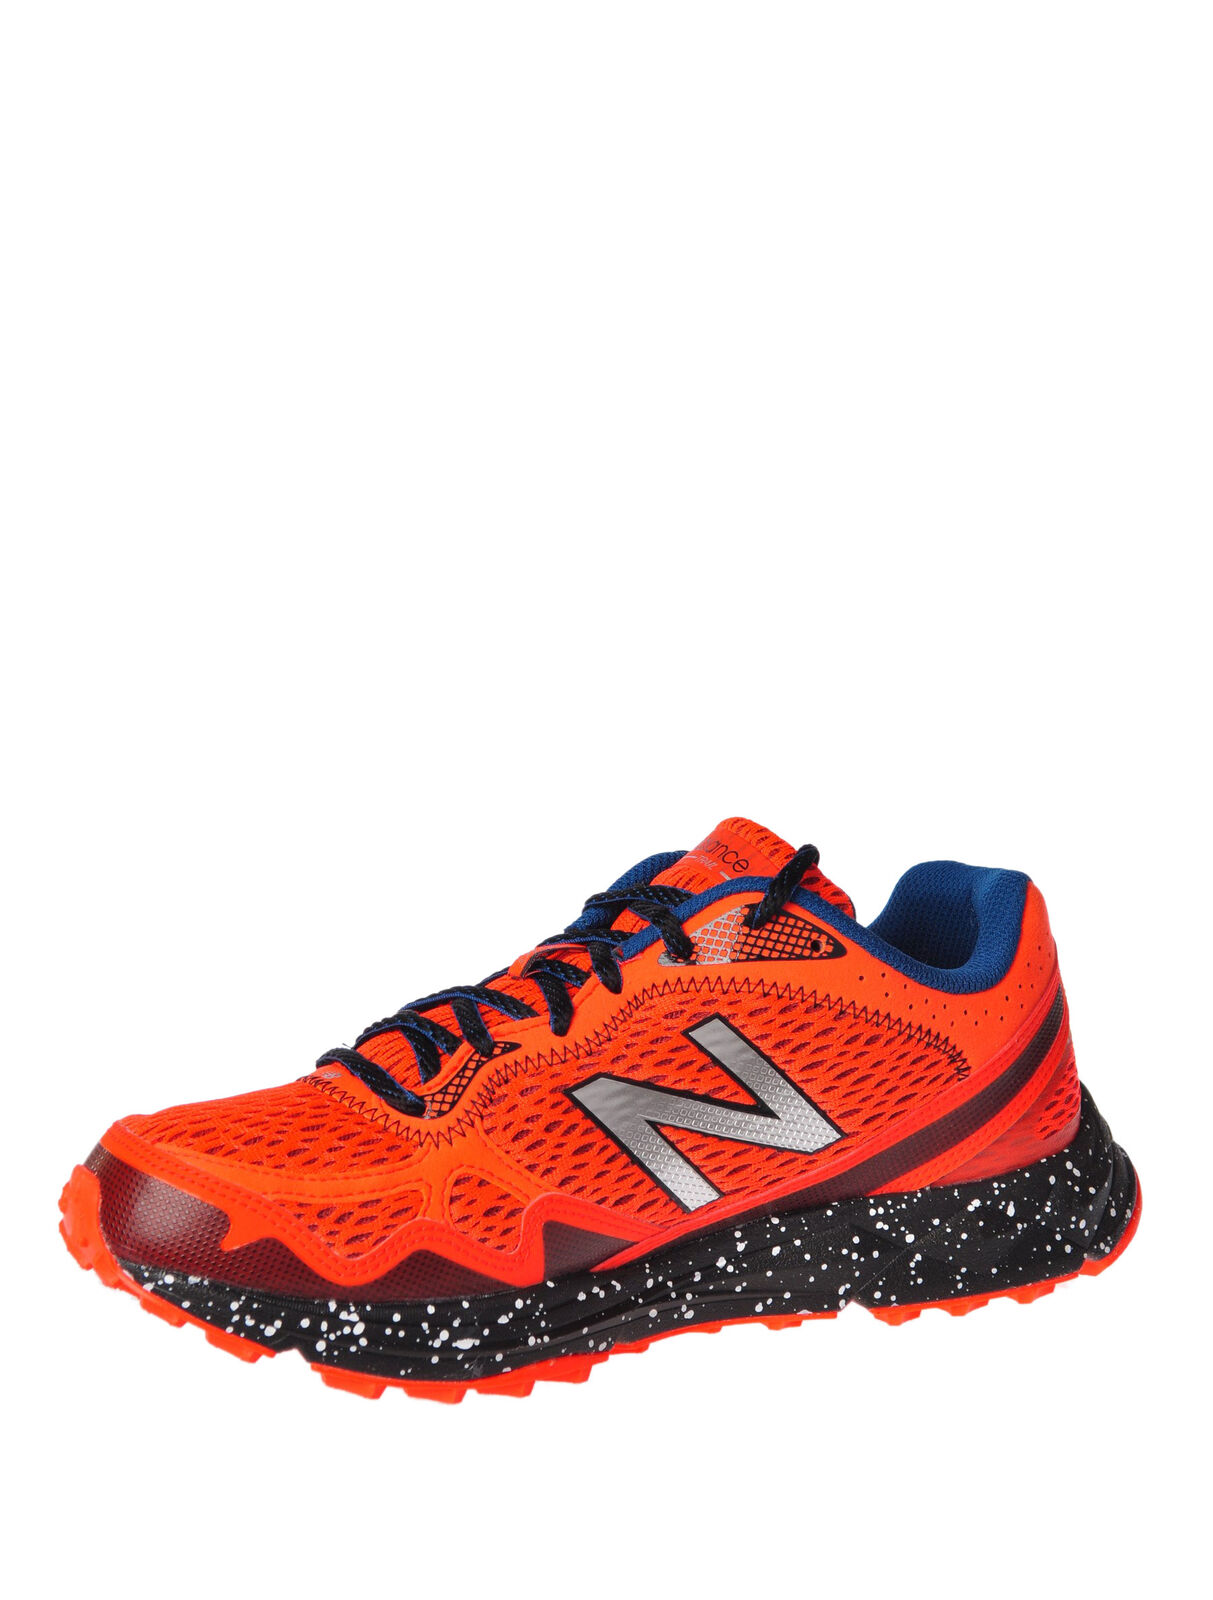 New Balance - shoes-Sneakers low - - - Man - Red - 454915C184650 c268ee